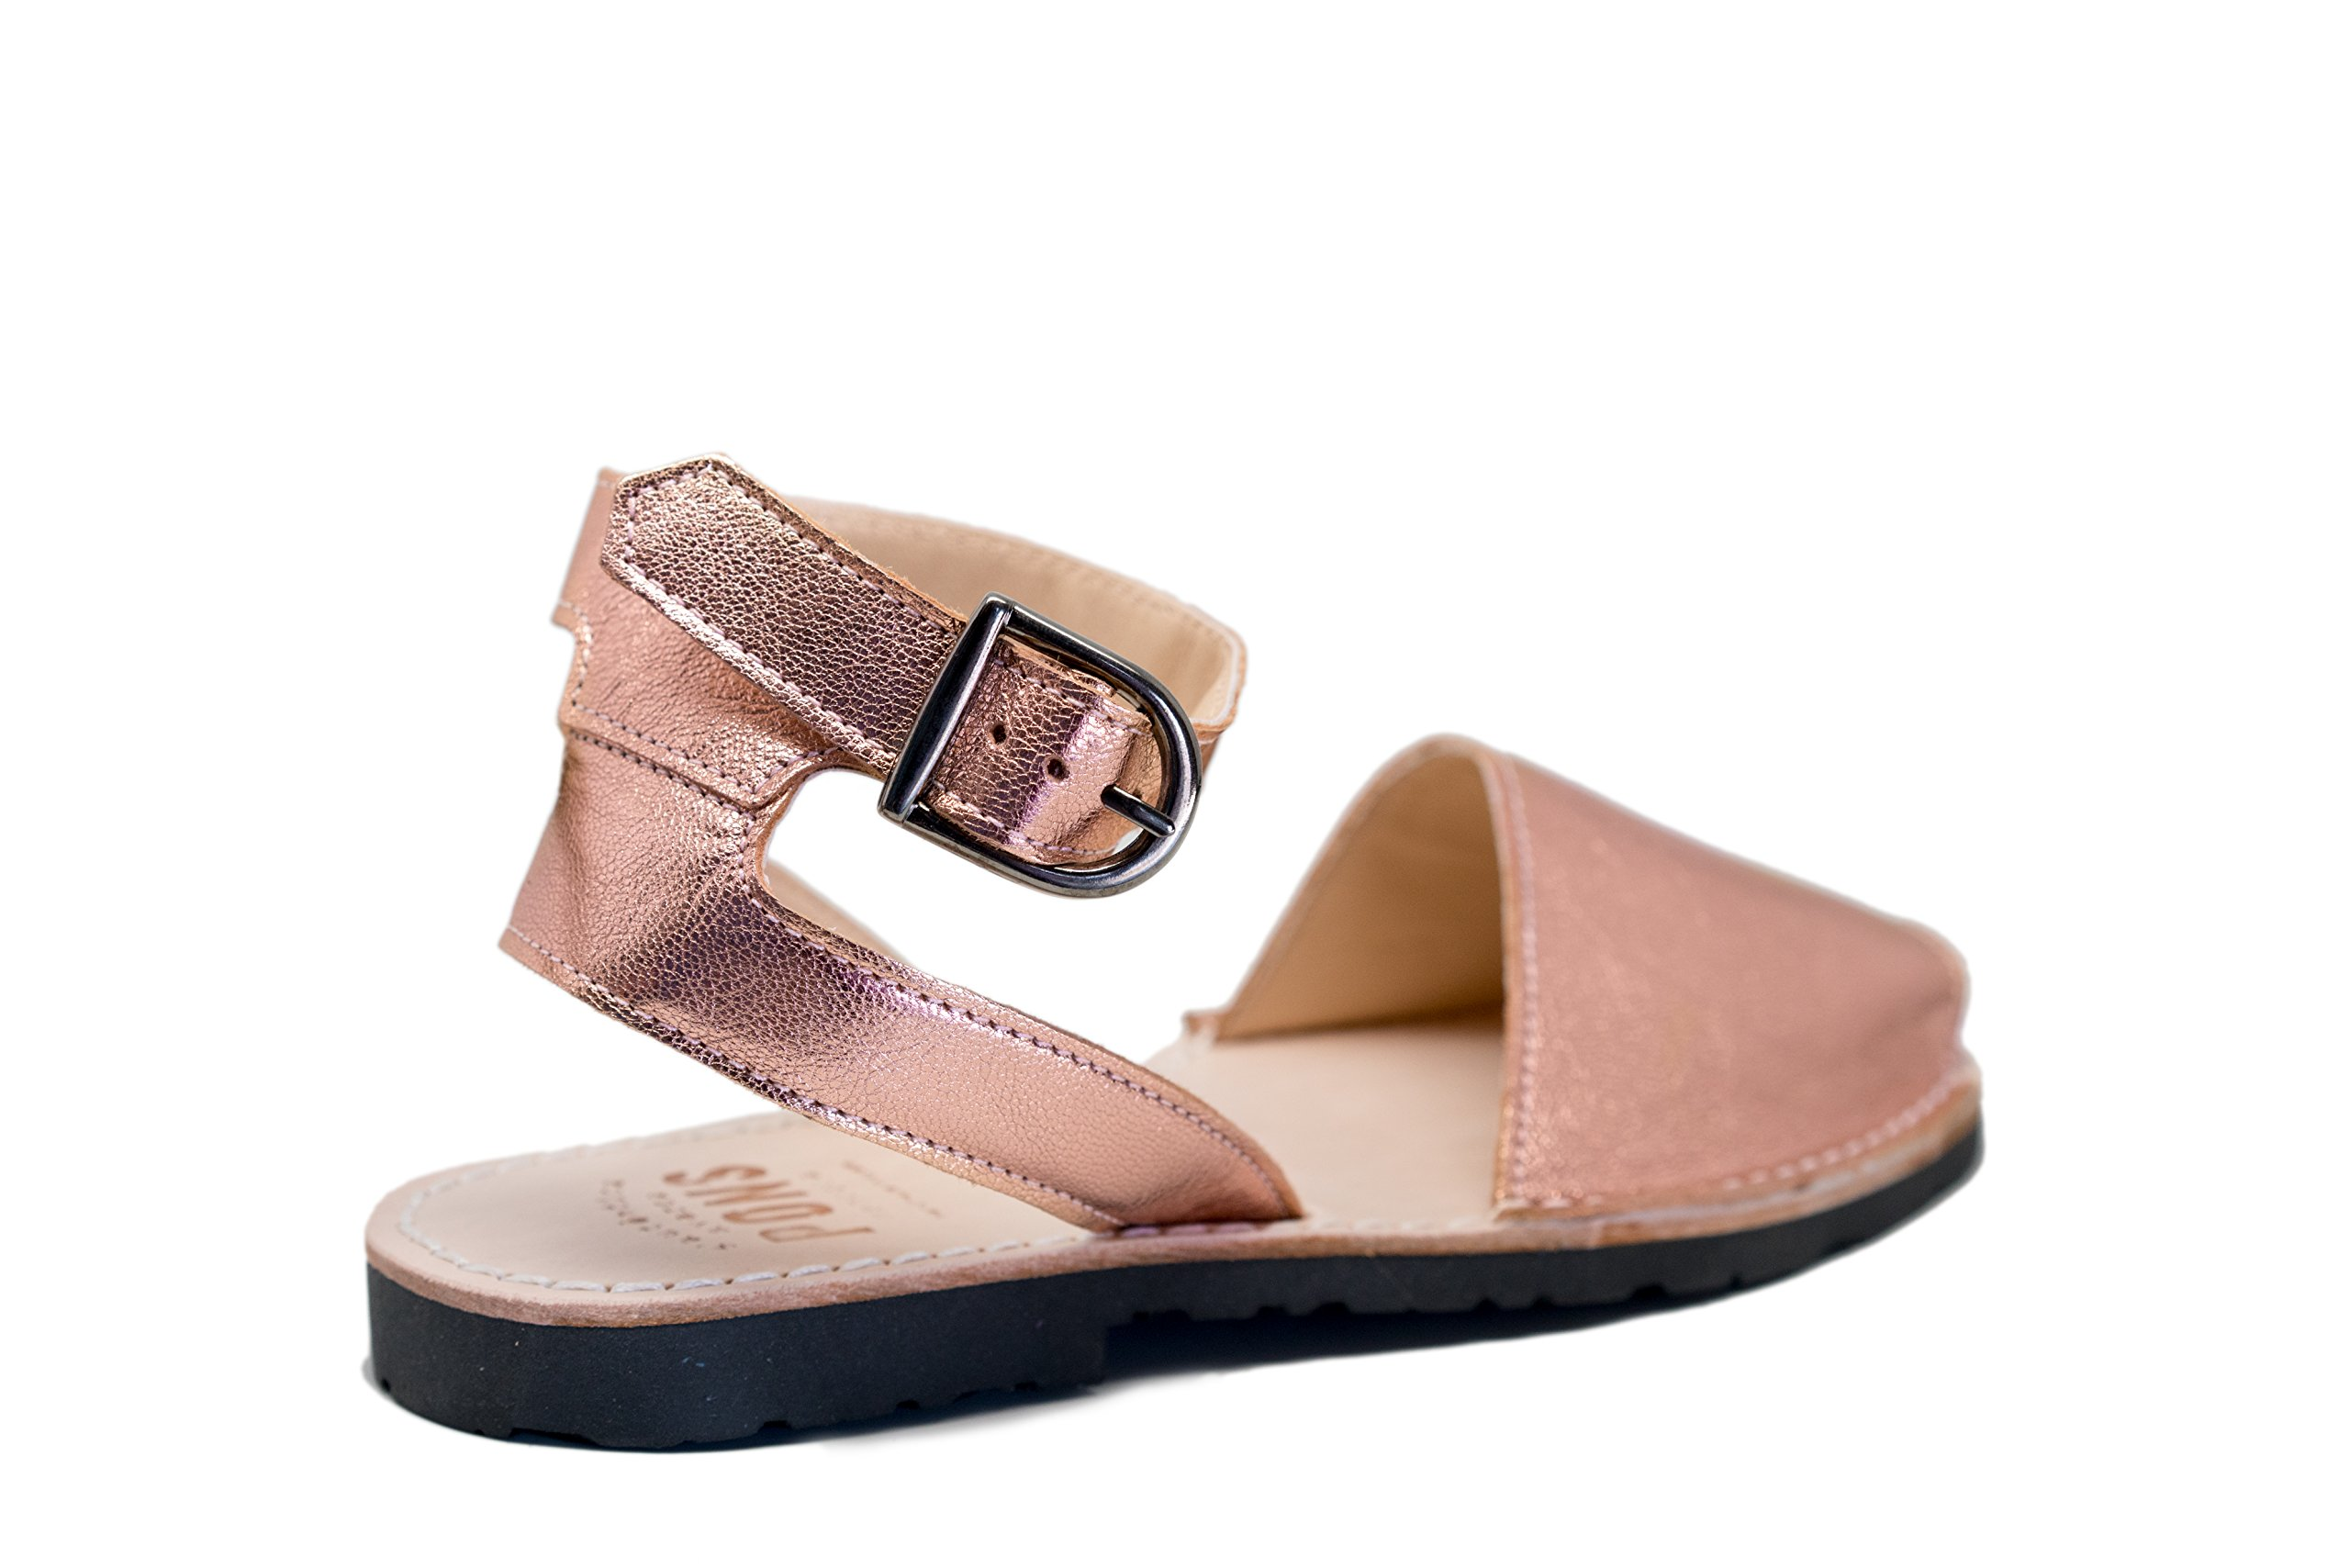 Pons 521A - Avarca Classic Style Strap Metallic - Rose Gold - 40 (US 10)